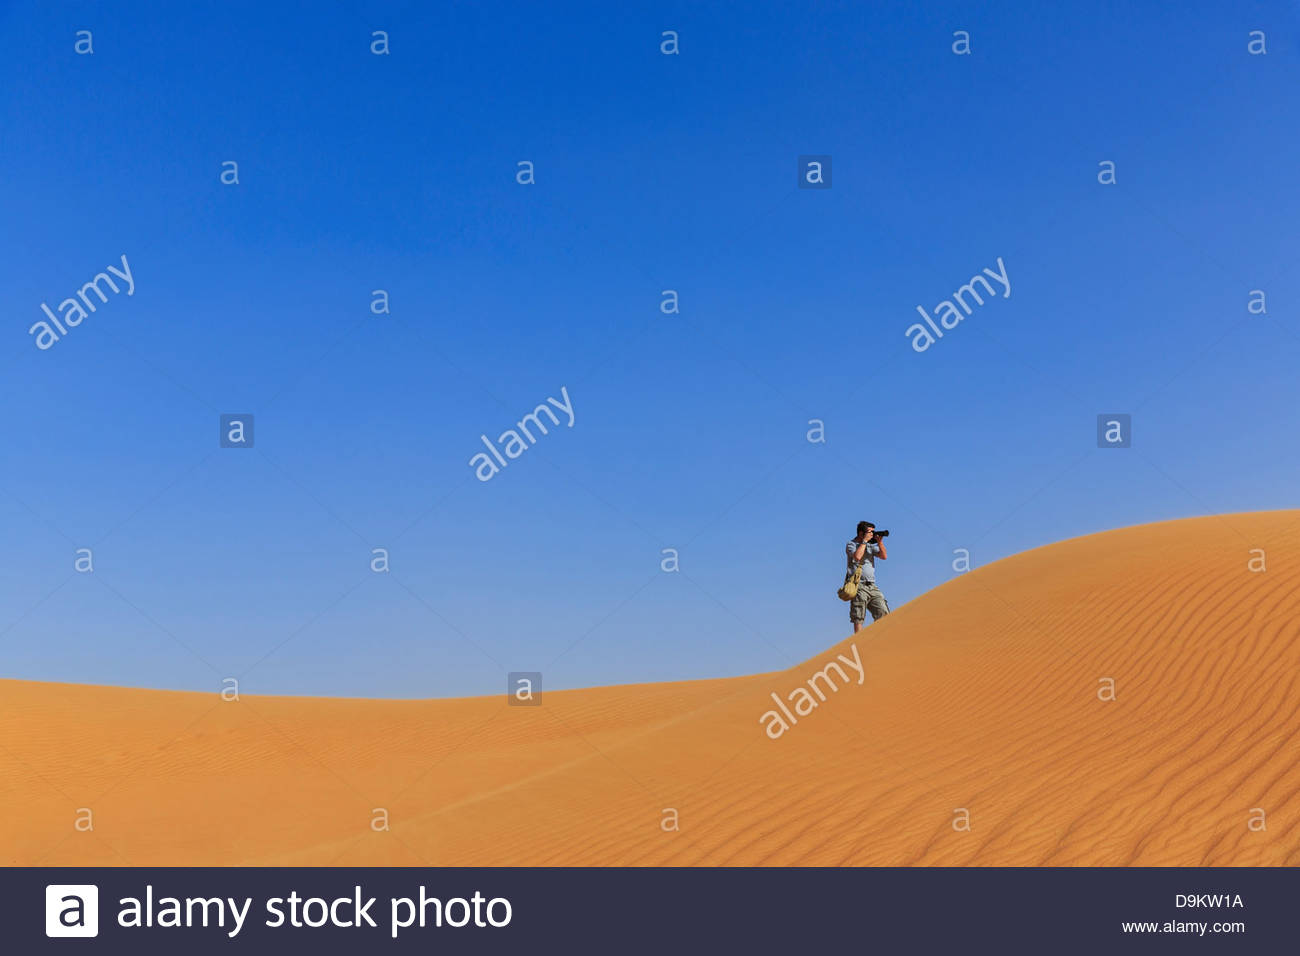 Man photographing in sand dunes in desert, Dubai, United Arab Emirates - Stock Image